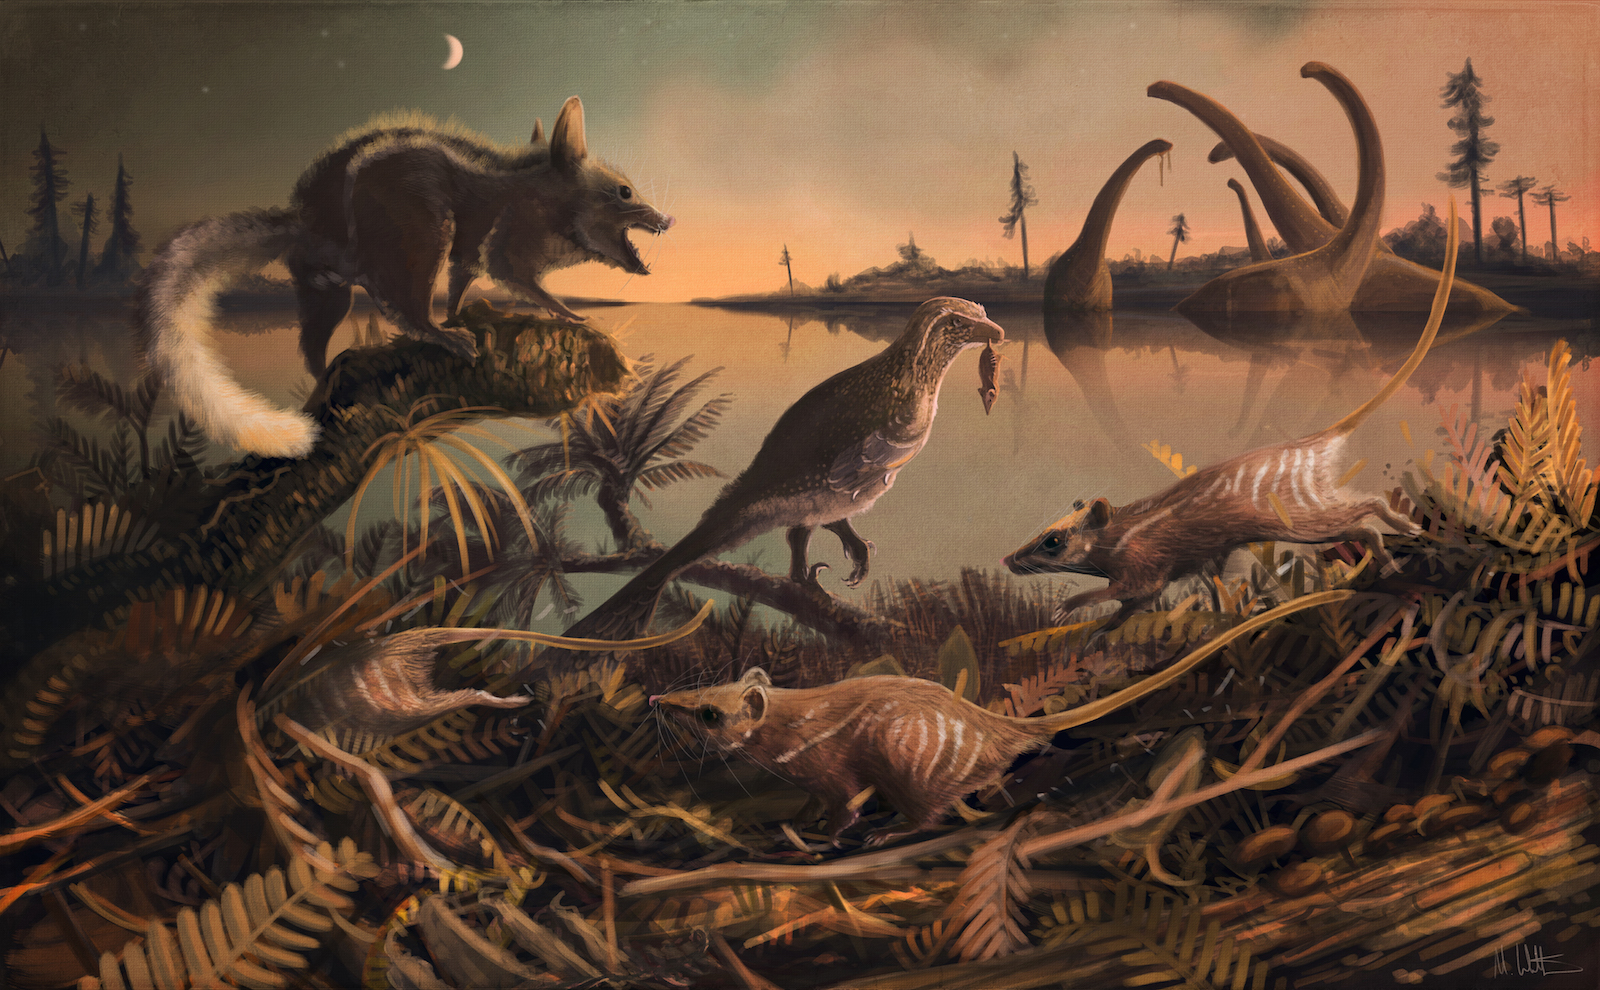 Researchers have confirmed that fossils discovered on southern England's Jurassic Coast belonged humankind's earliest known mammal ancestors.